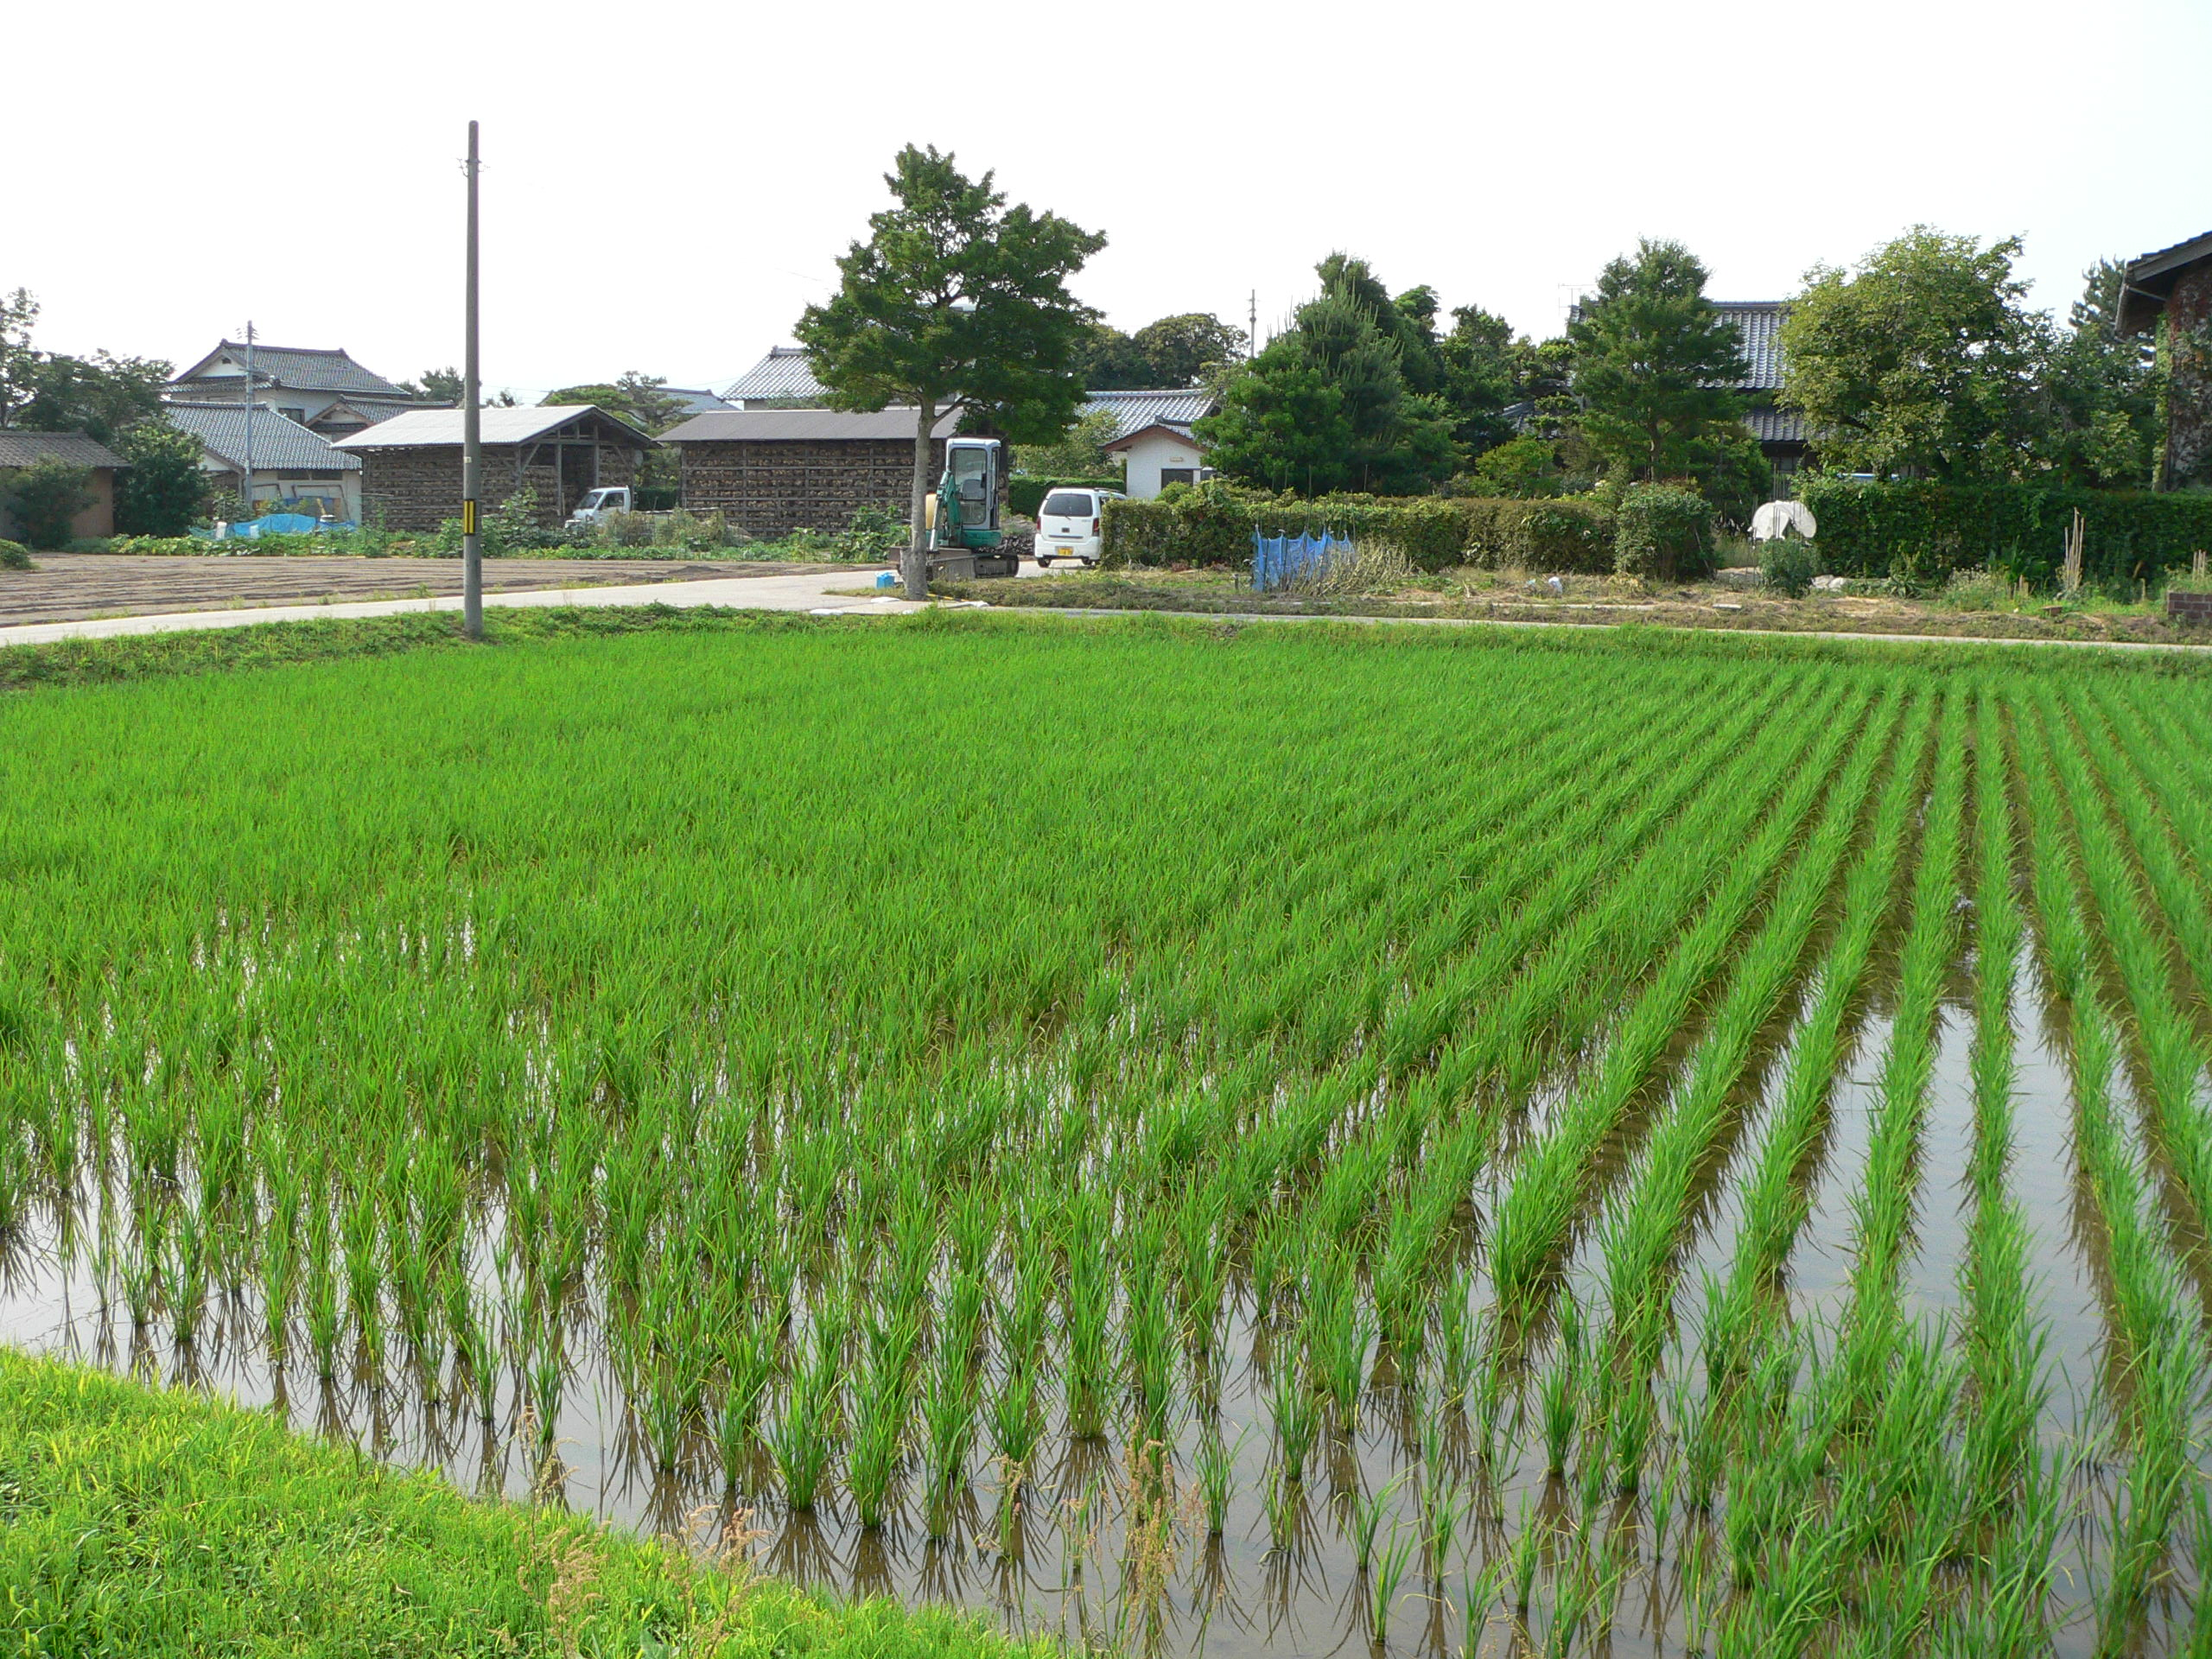 Freshly planted field of rice in hikawa, japan photo